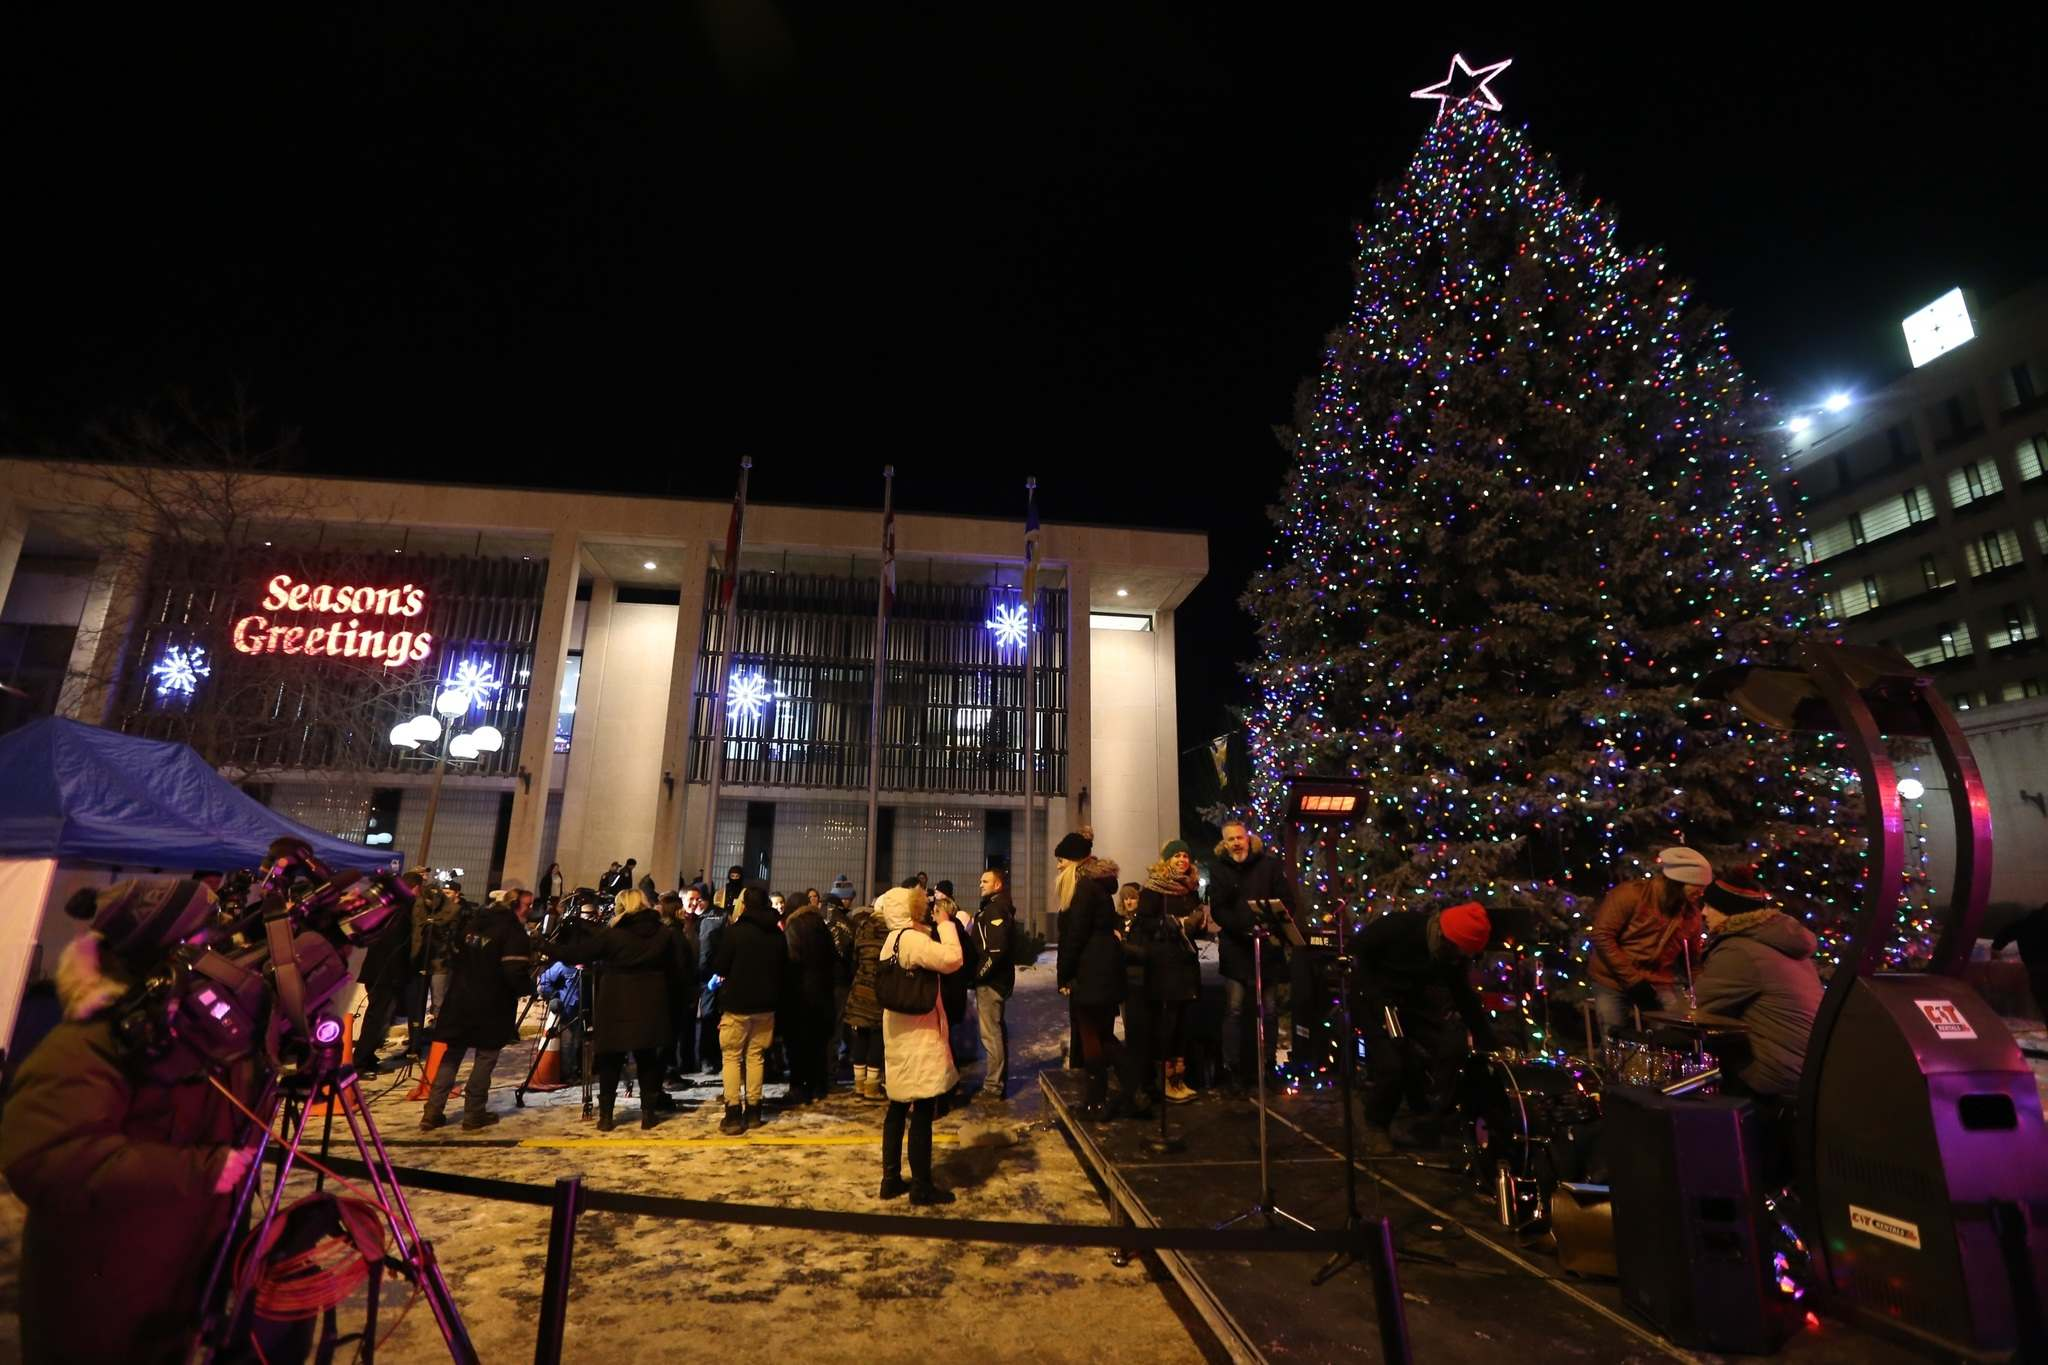 The mayor usually lights the tree at a ceremony, which might not happen this year. (Trevor Hagan / Winnipeg Free Press files)